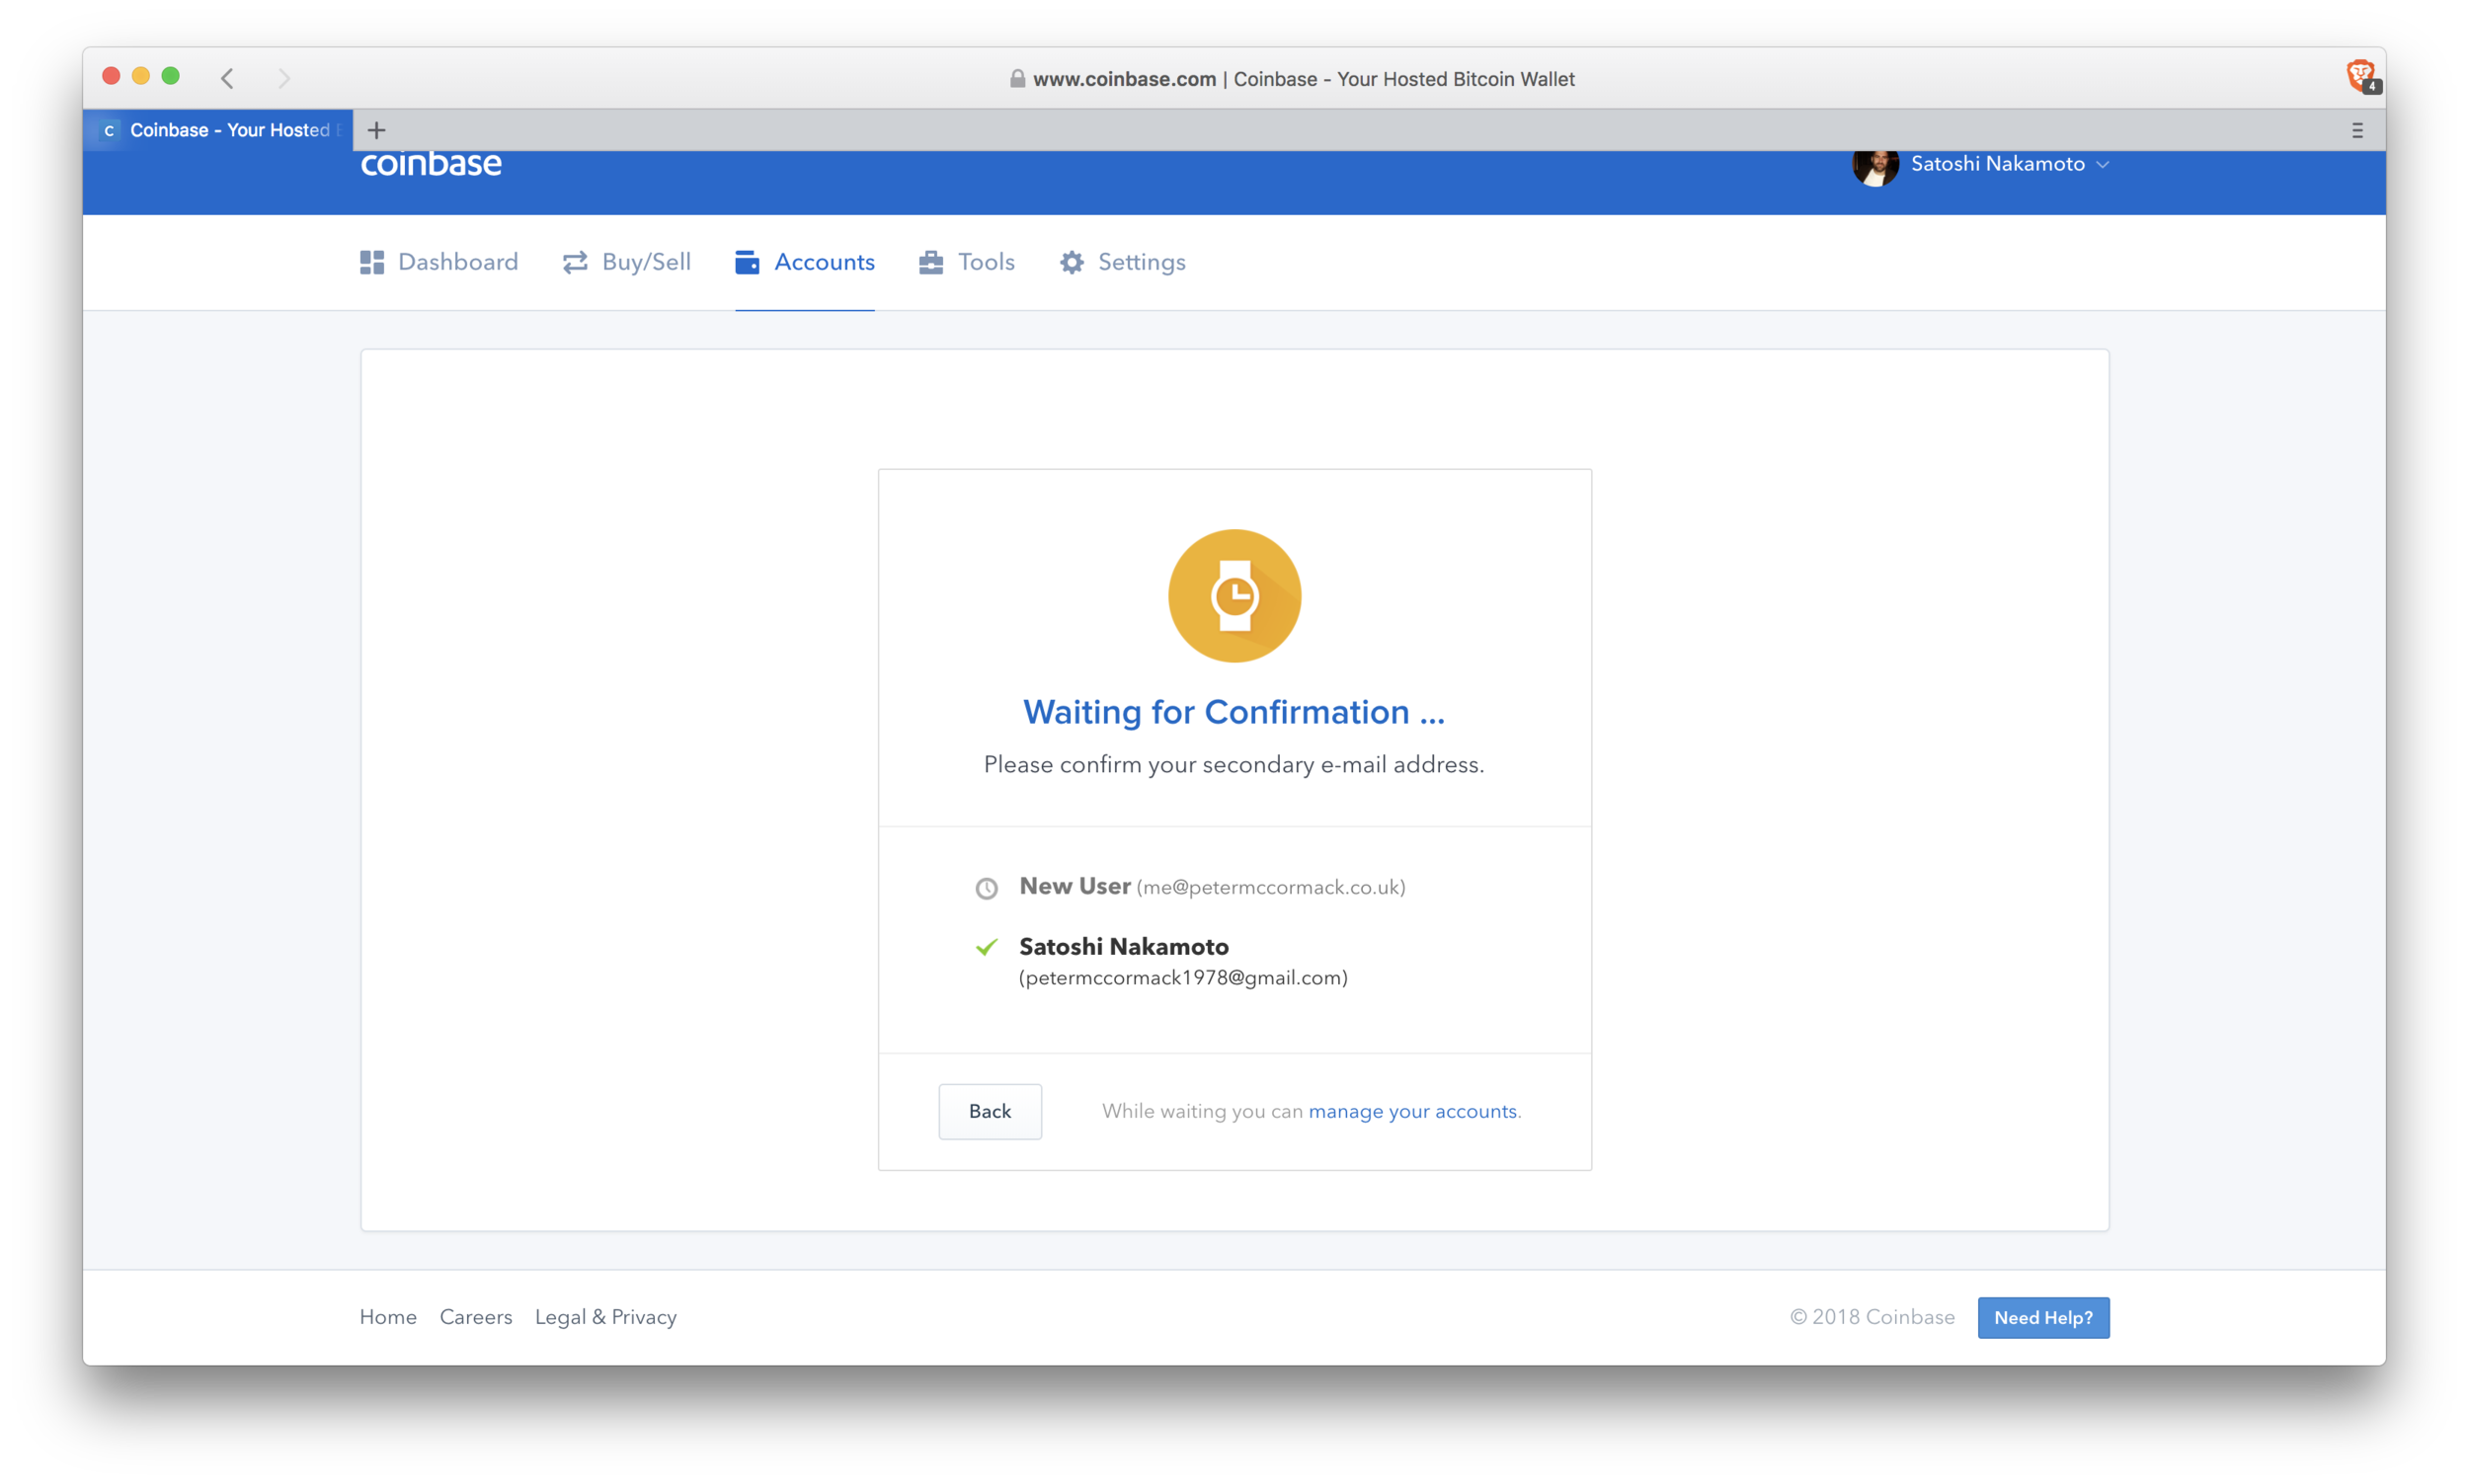 Coinbase: confirm secondary email